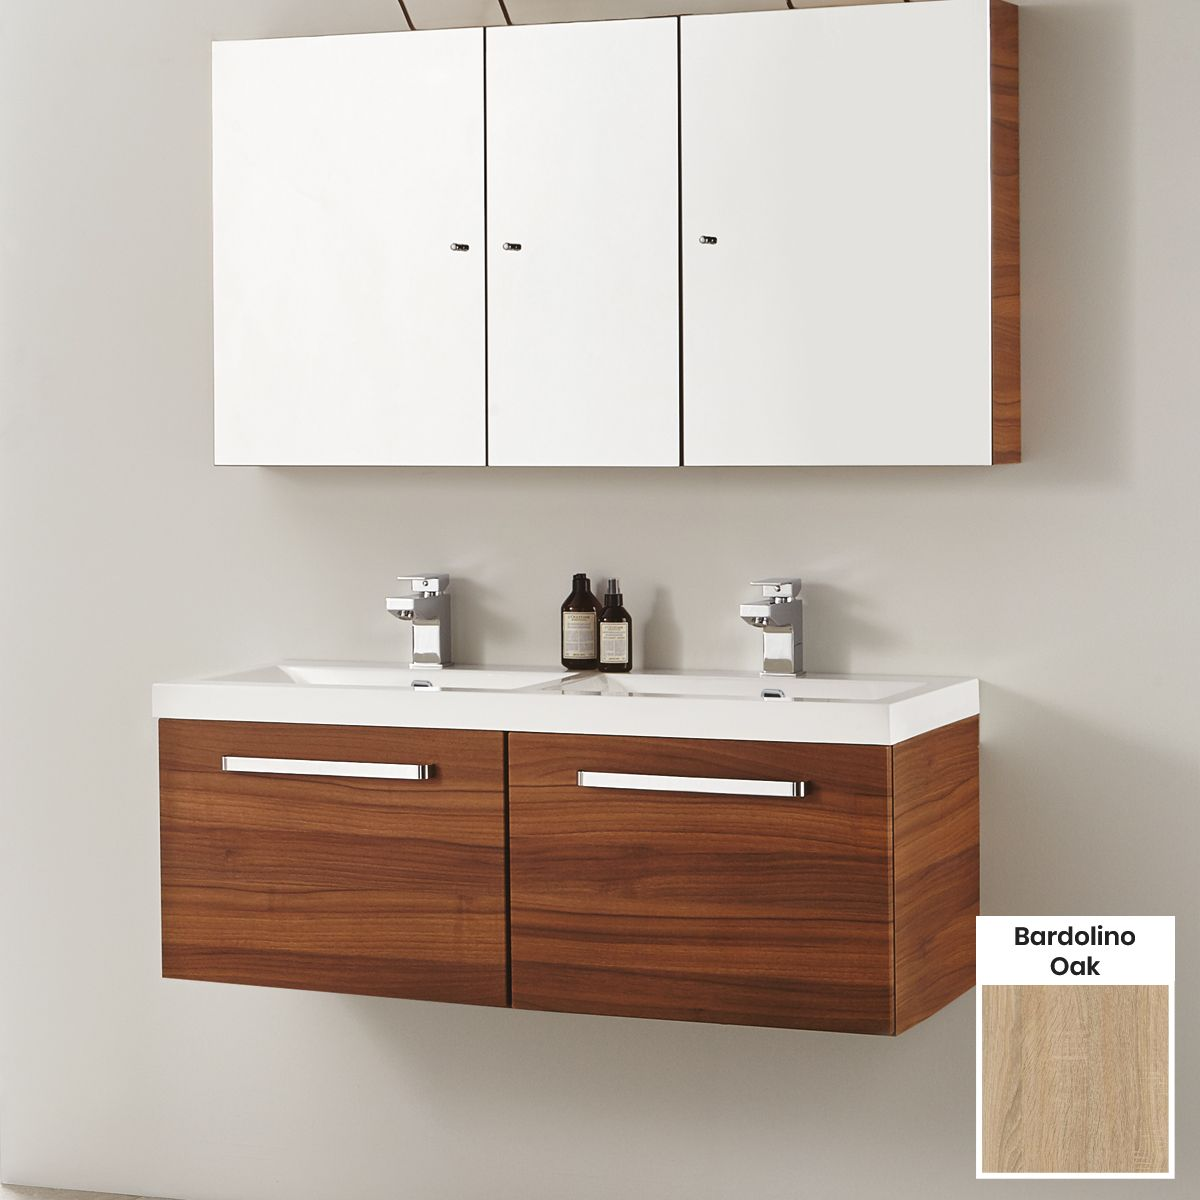 Elation Eko Bardolino Oak Vanity Unit with Groove Drawer 1100mm